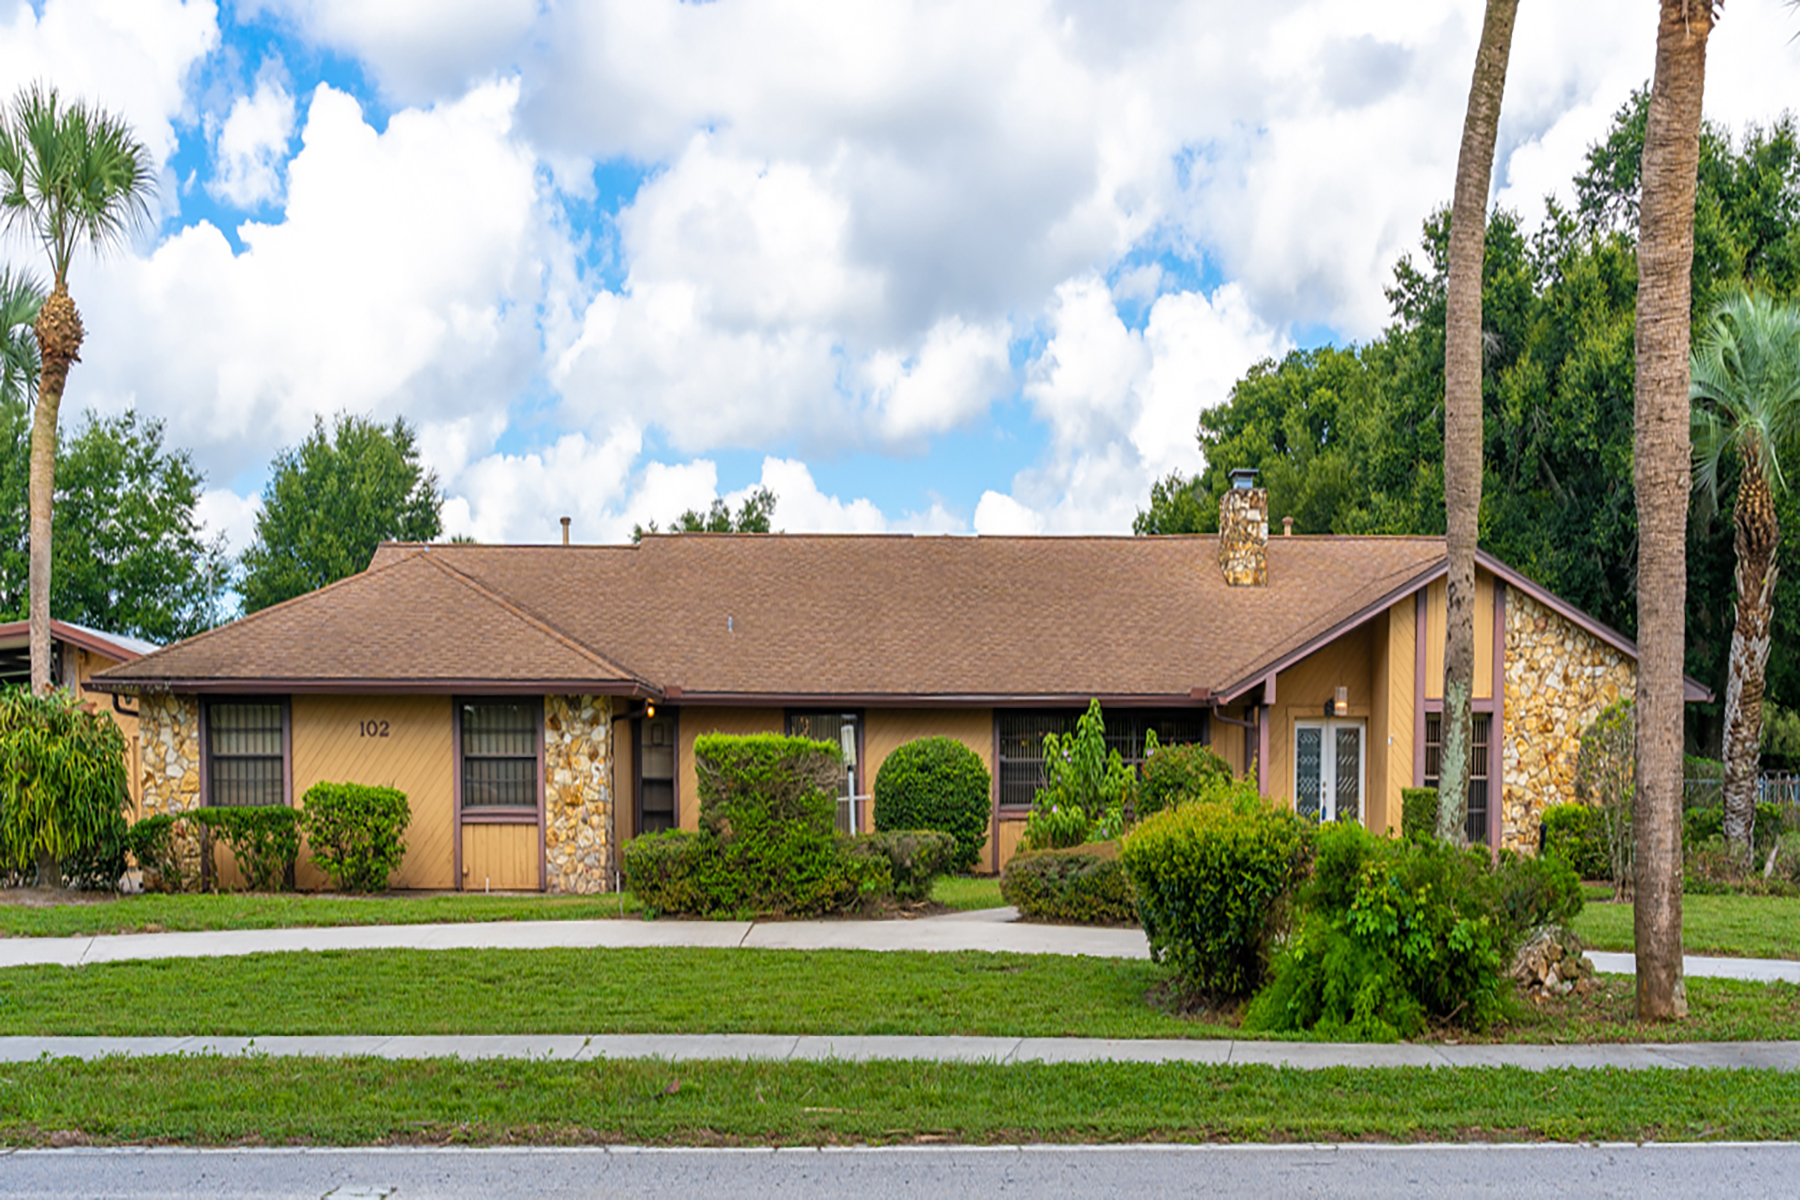 Single Family Homes for Sale at ORLANDO - ALTAMONTE SPRINGS 102 Camden Rd, Altamonte Springs, Florida 32714 United States